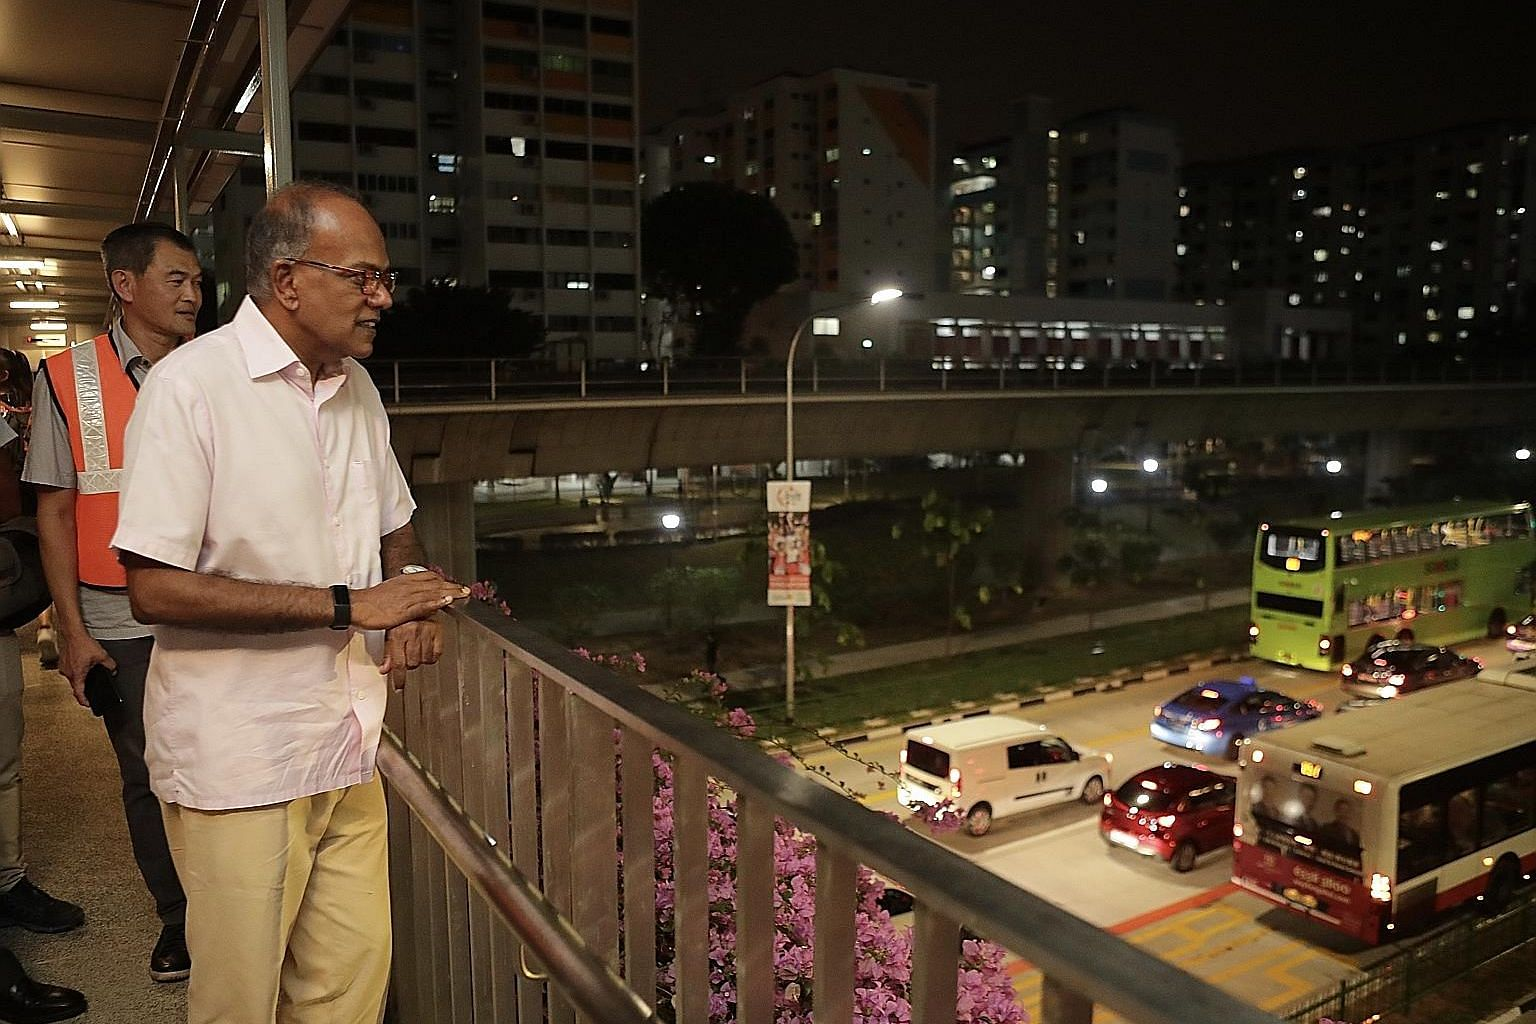 Law and Home Affairs Minister K. Shanmugam observing road conditions from an overhead bridge in Yishun Avenue 2 last night. Mr Shanmugam, seen here with Mr Lee Yong Heng, general manager of Mandai zone at SMRT Buses, was visiting the area around the